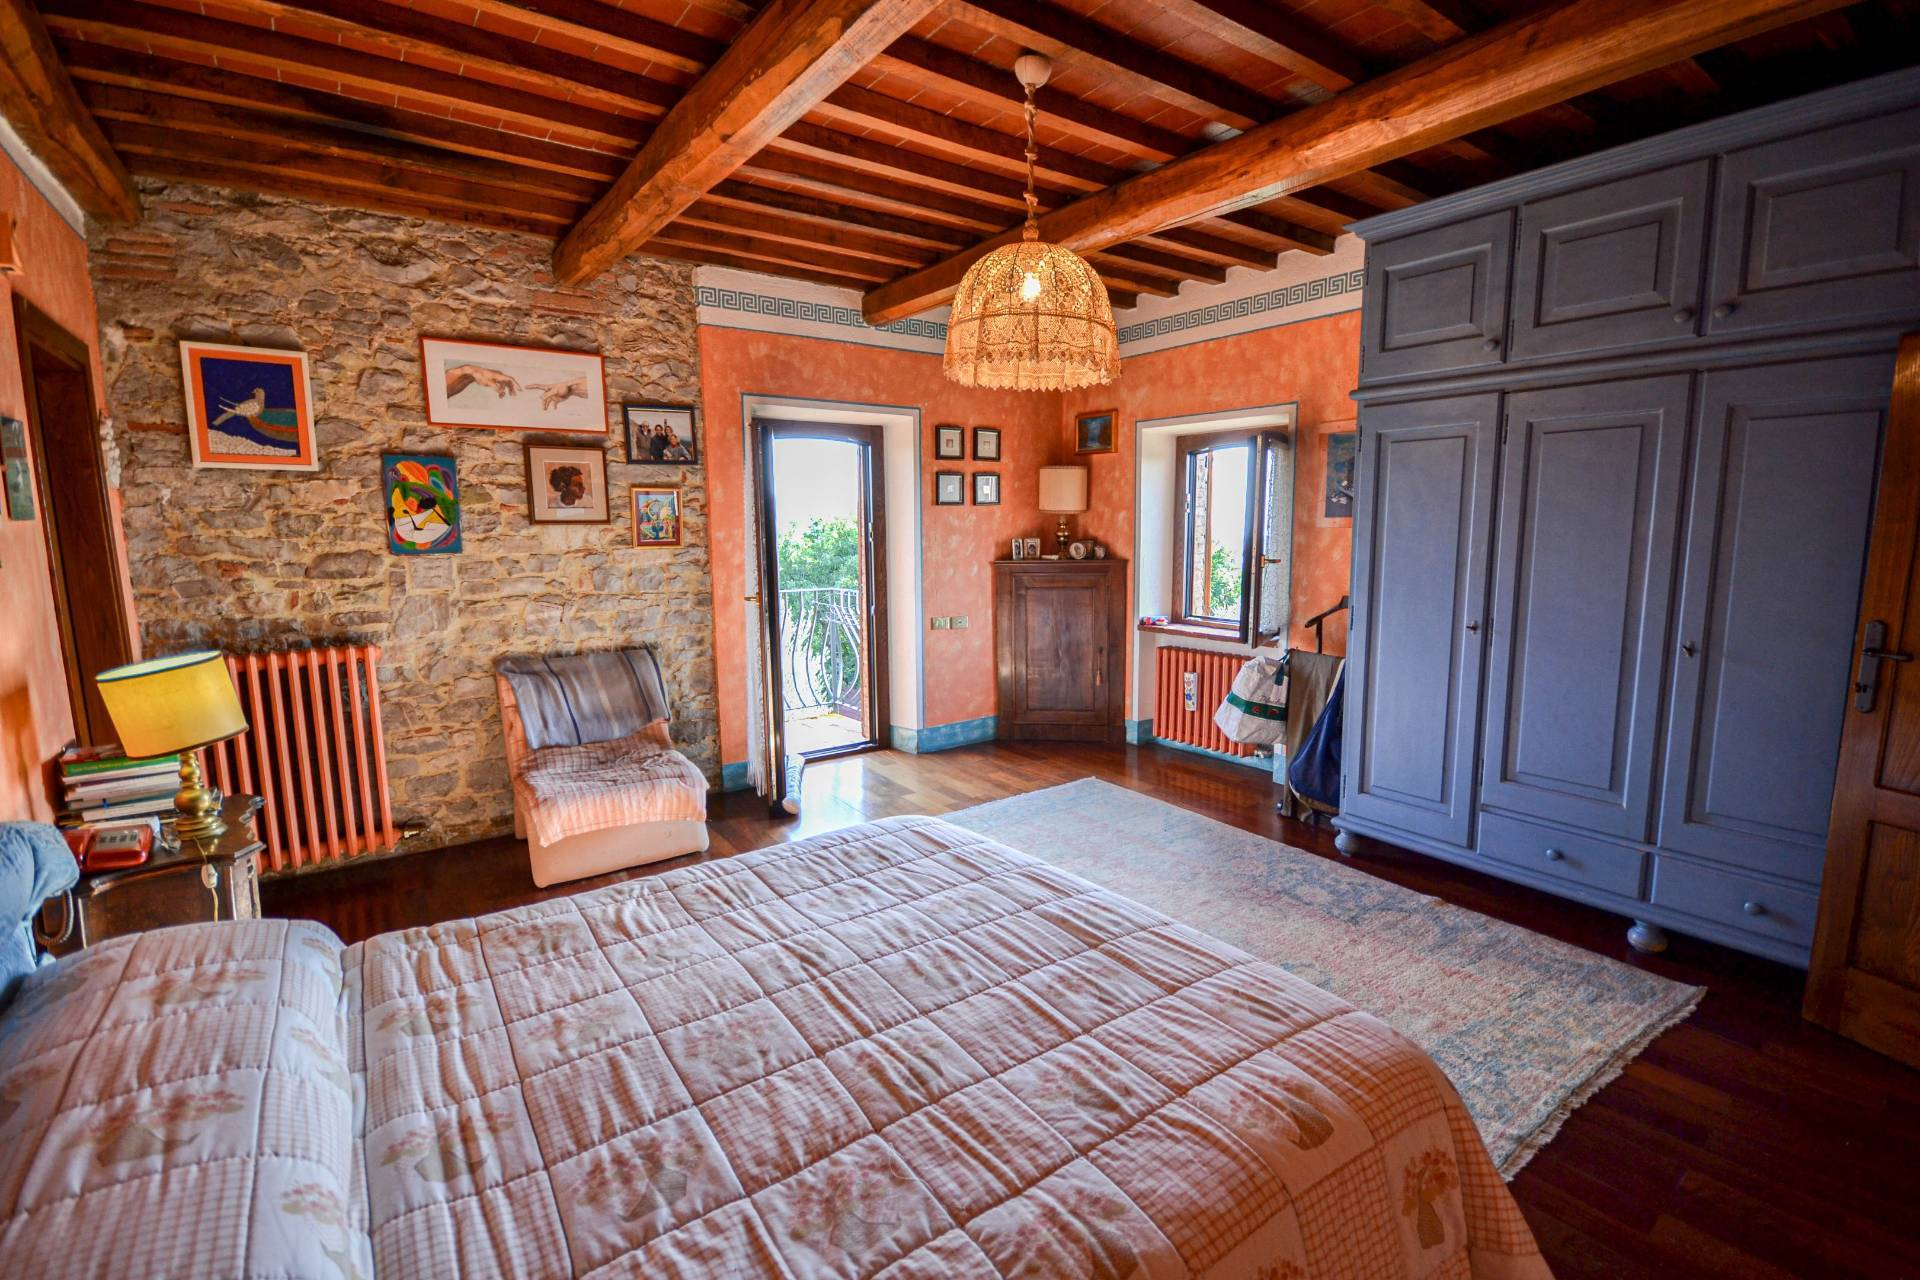 Wonderful property in the heart of Umbria - 15